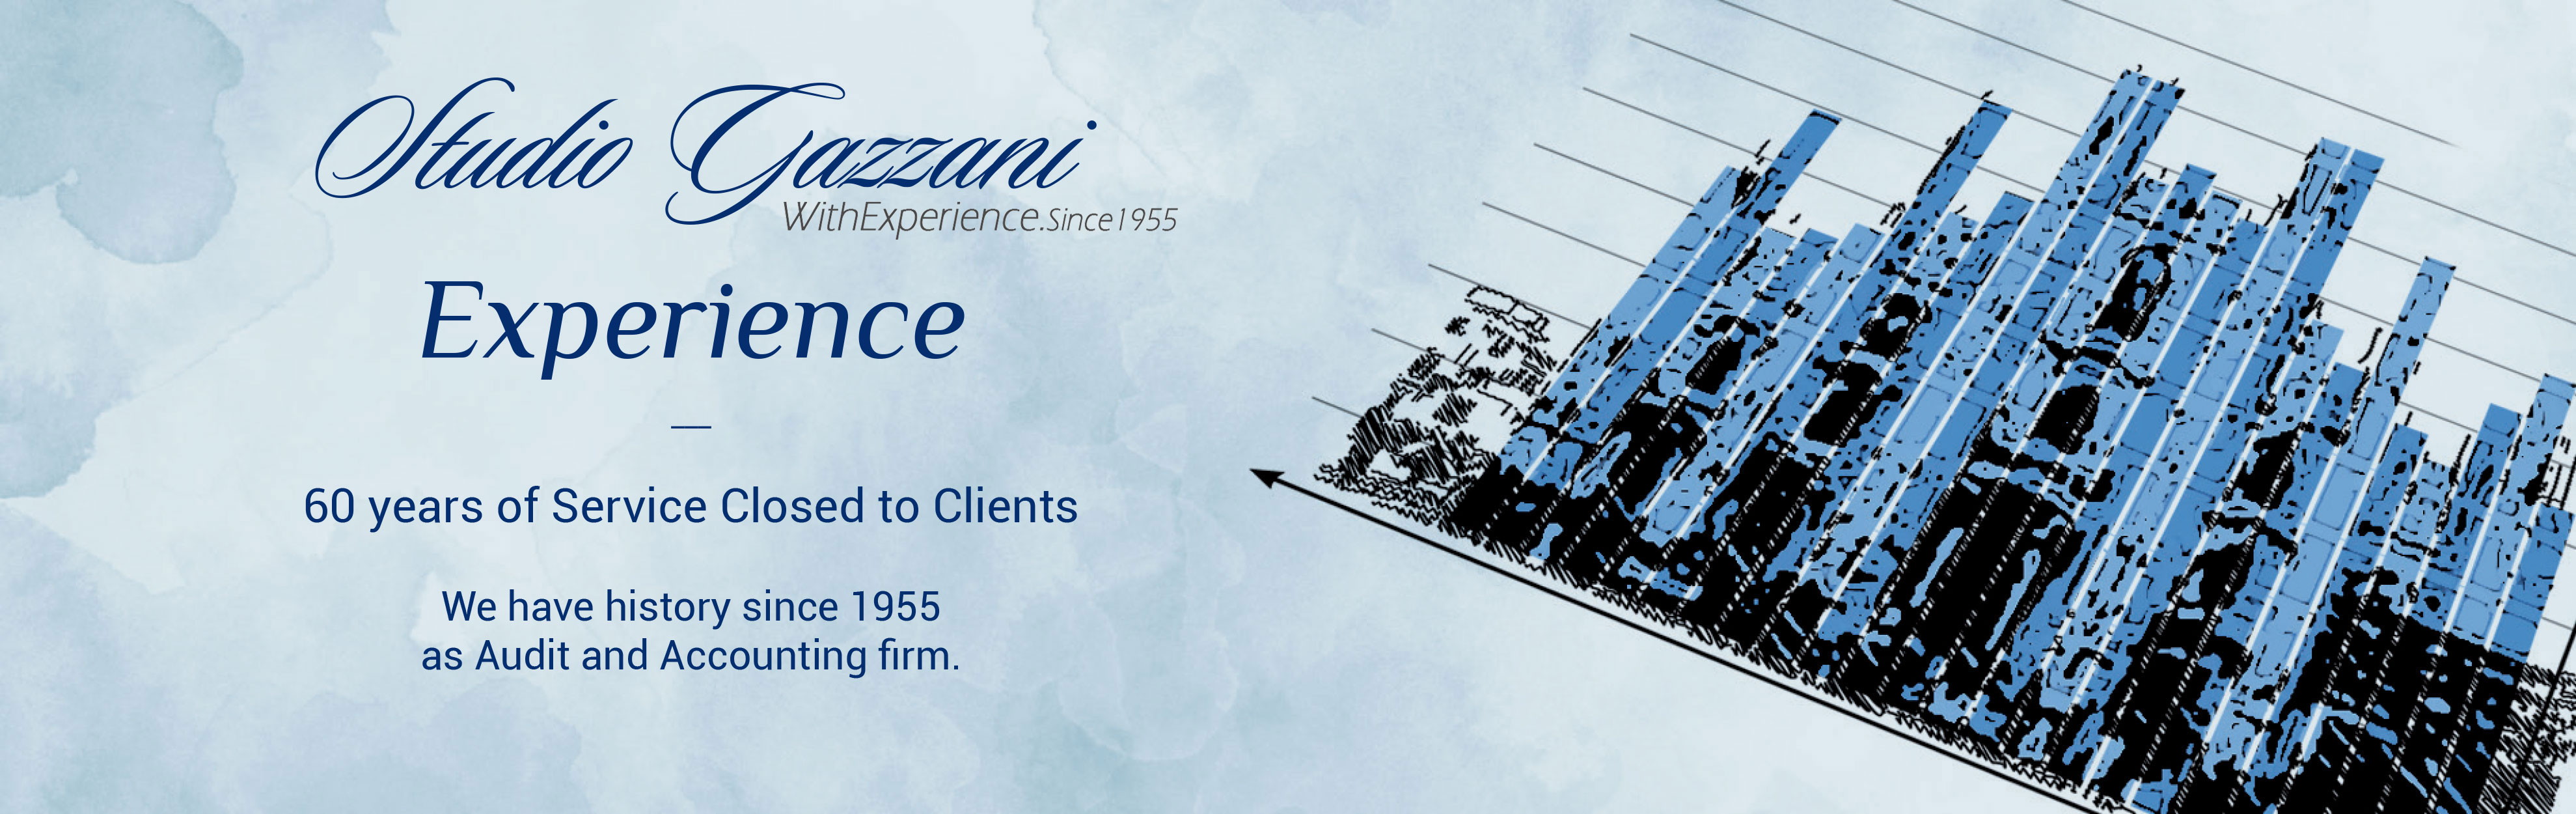 StudioGazzani, studio commercialista Verona, Studio contabile Verona, legal tax Verona, legal auditor Verona, tax advisor Verona, consultant Verona, tax consultant Verona (Lago di garda), consulente fiscale Verona, fiscalista Verona, commercialista verona, accountant verona